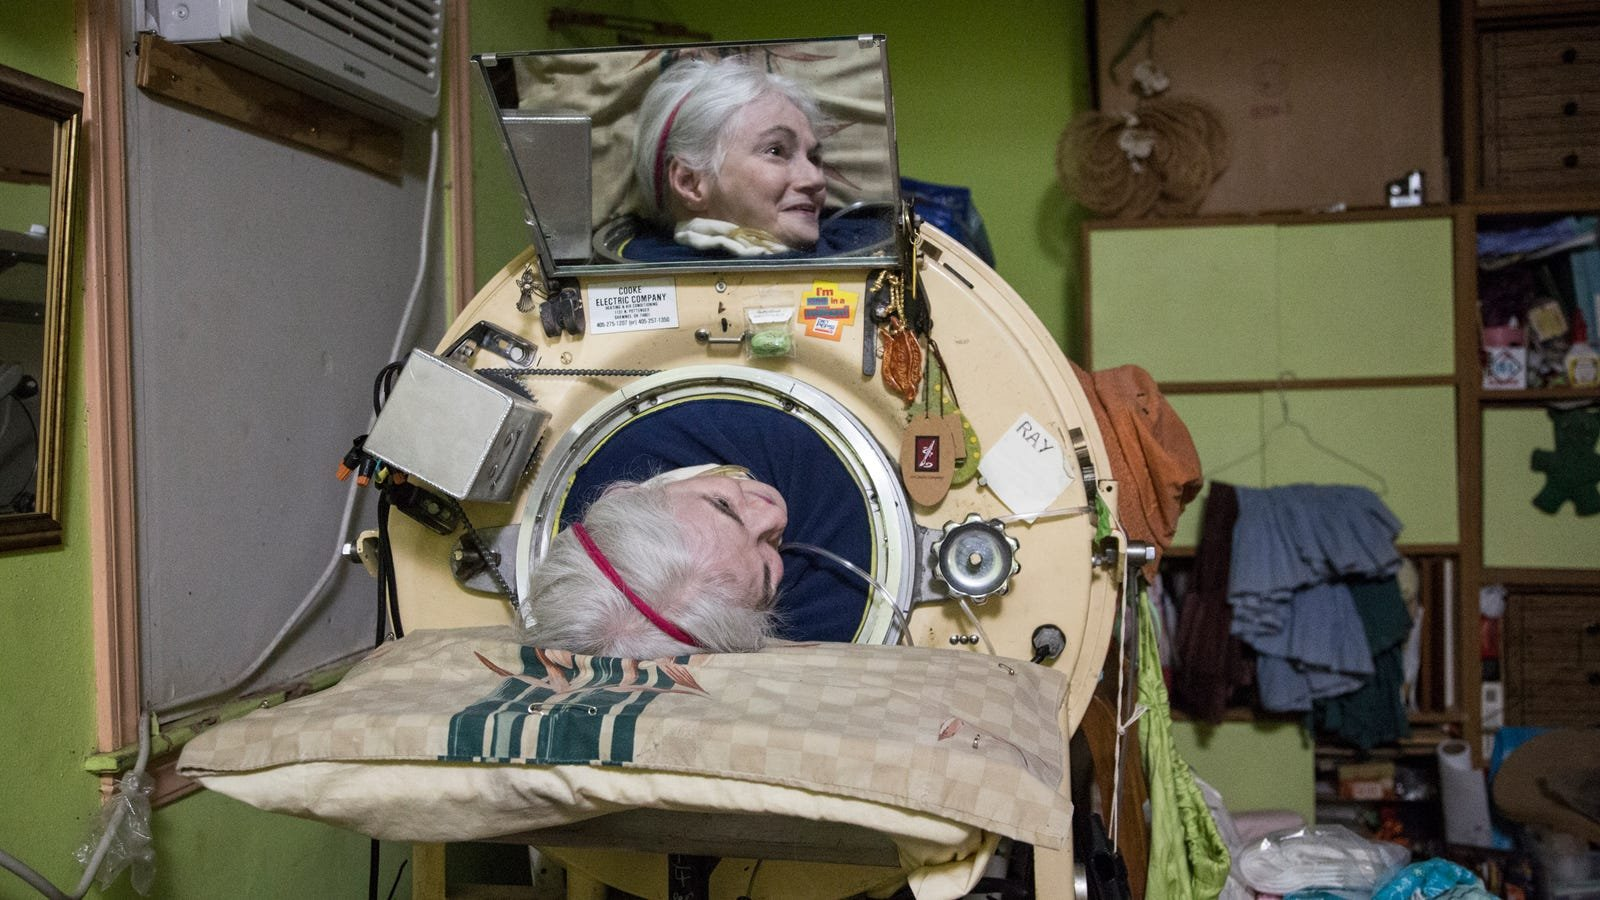 Martha Lillard inside her iron lung, which has been modified by mechanics over the years. Photo: Jennings Brown for Gizmodo